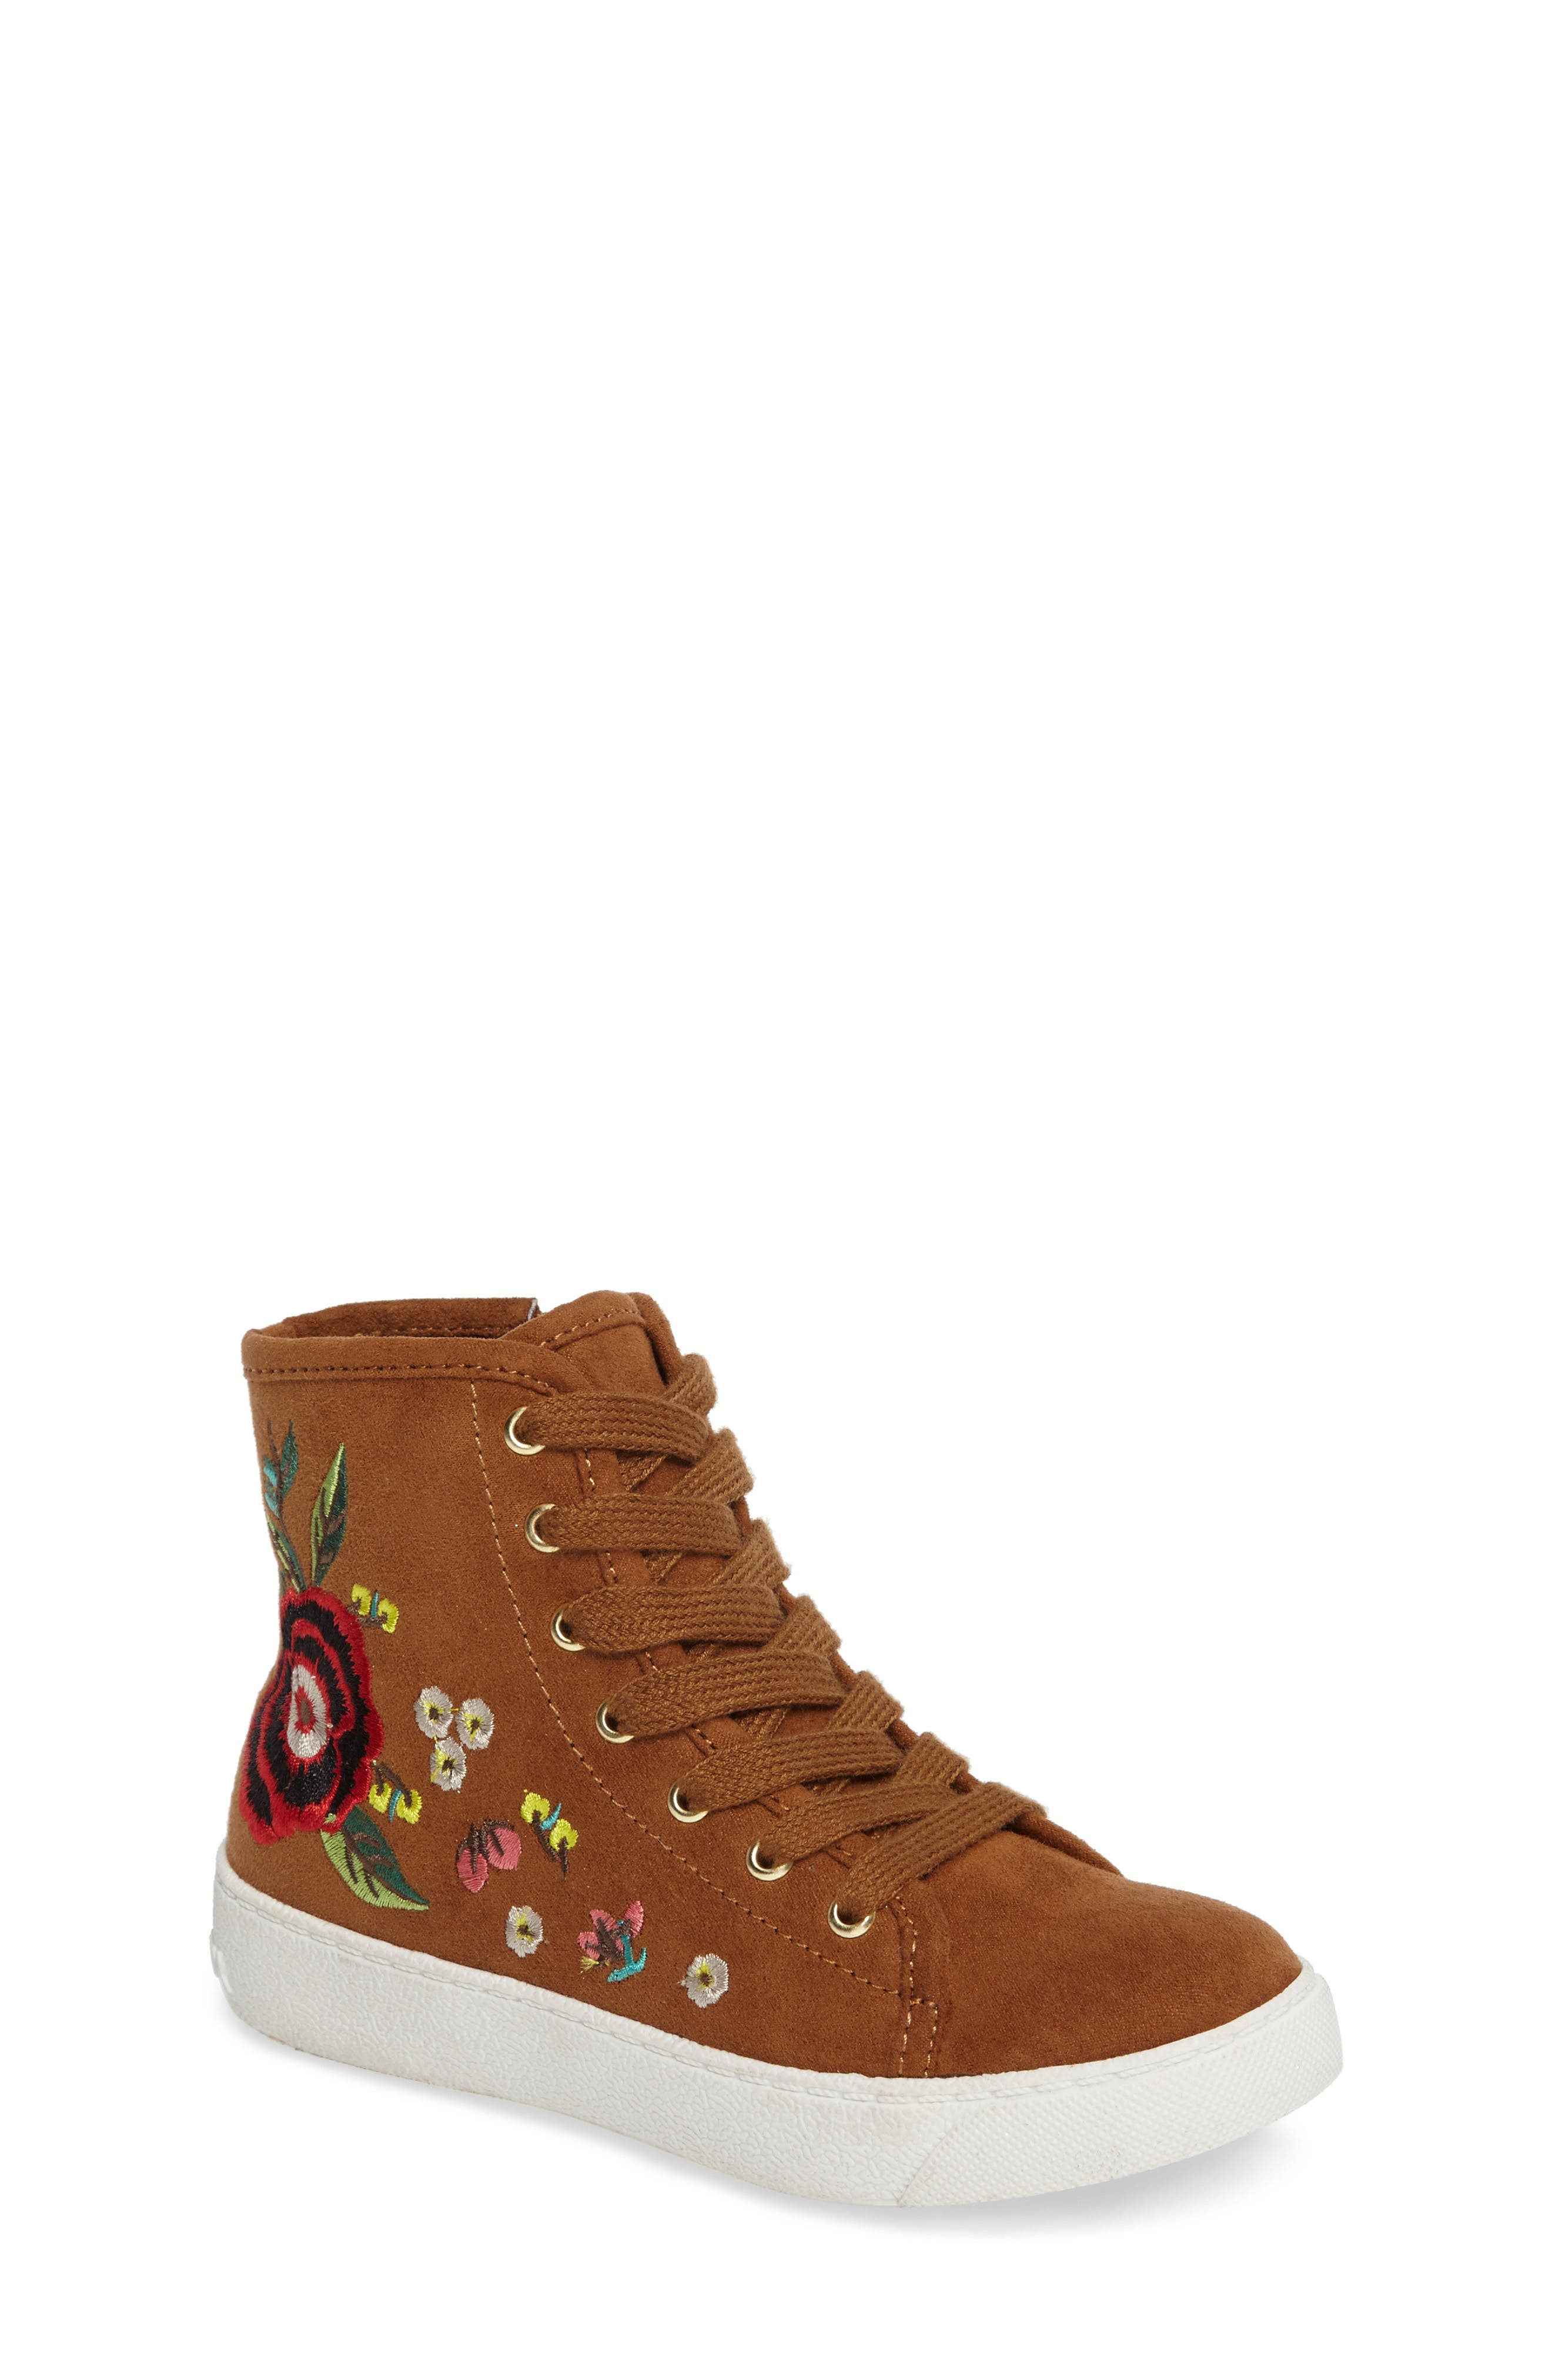 Harriet Embroidered High Top Sneaker,                             Main thumbnail 1, color,                             200